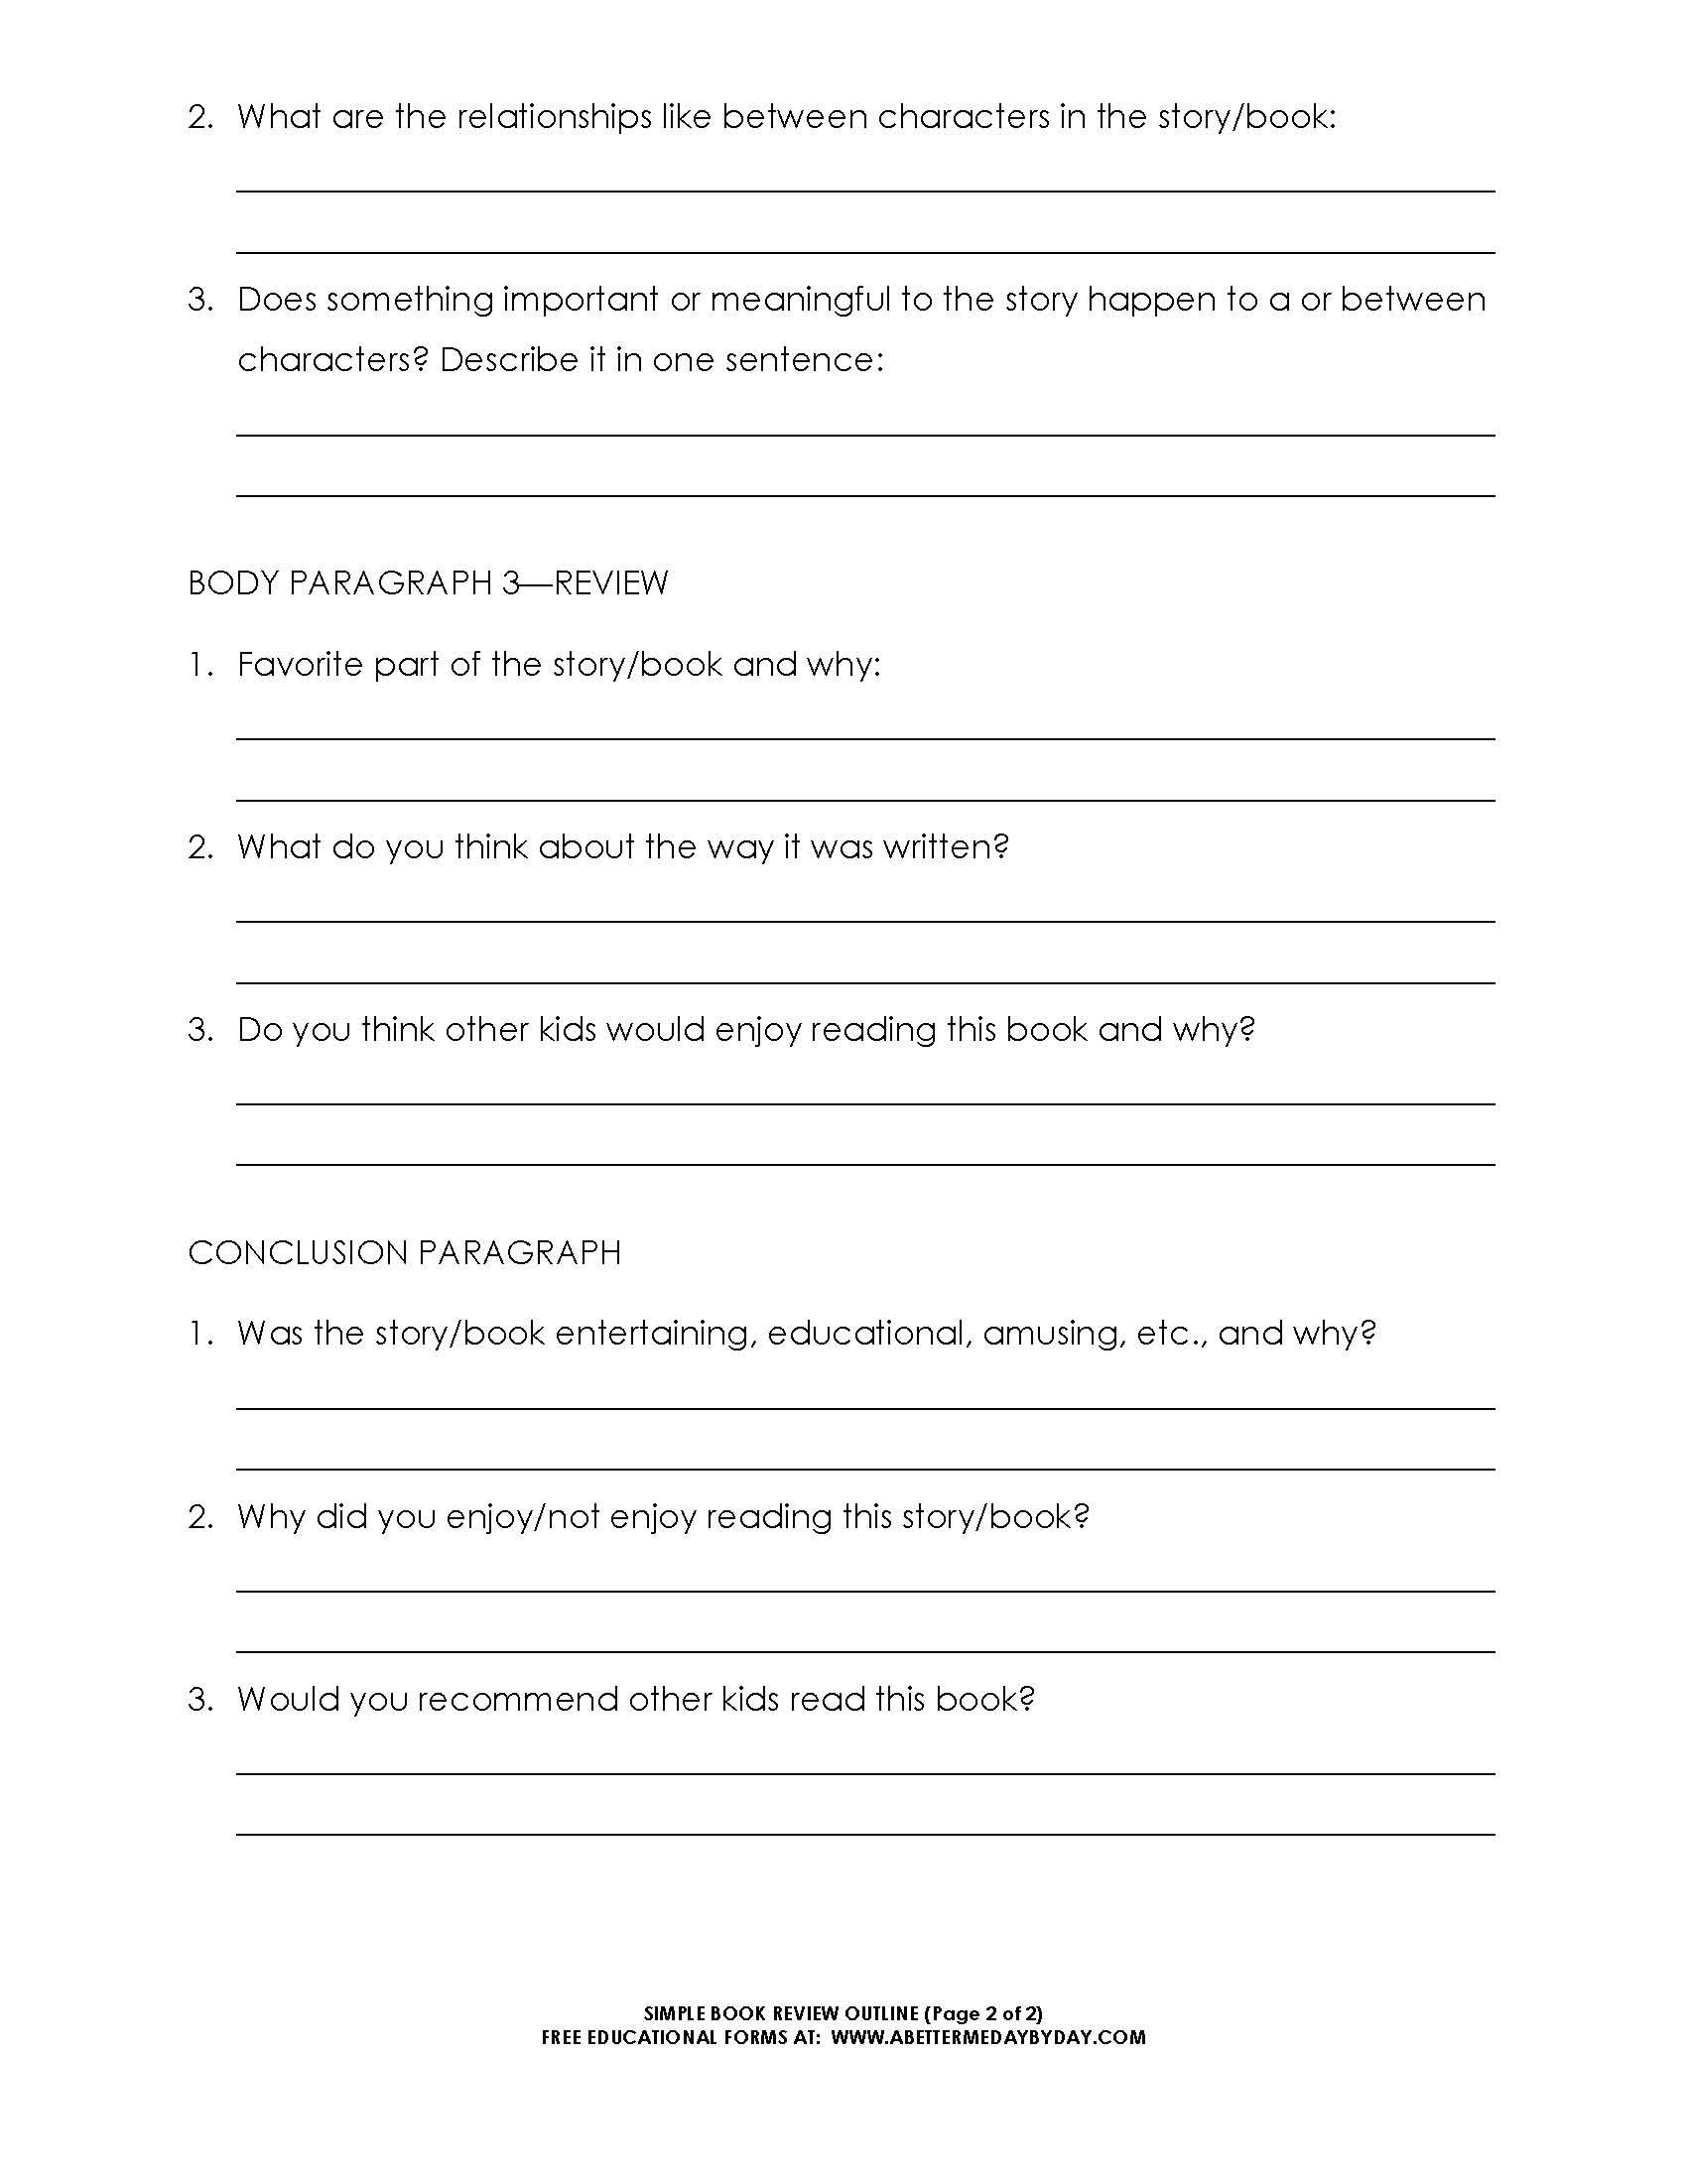 simple 5 paragraph book review or report outline form book hs simple book review outline page 2